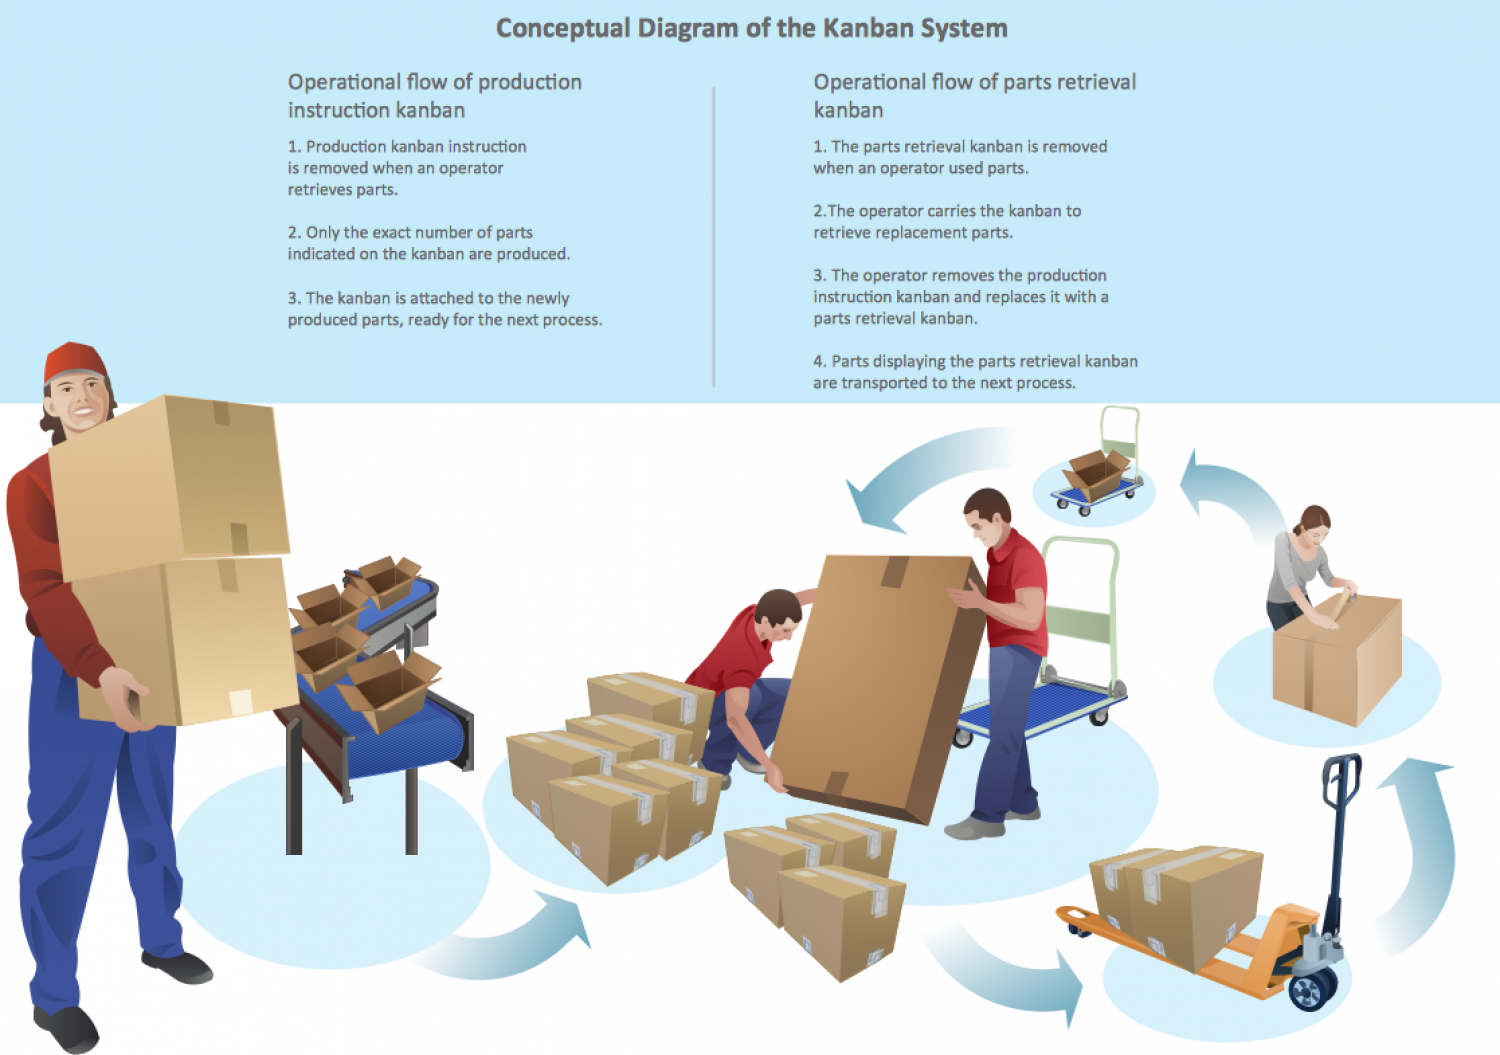 Conceptual Diagram of the Kanban System Infographic